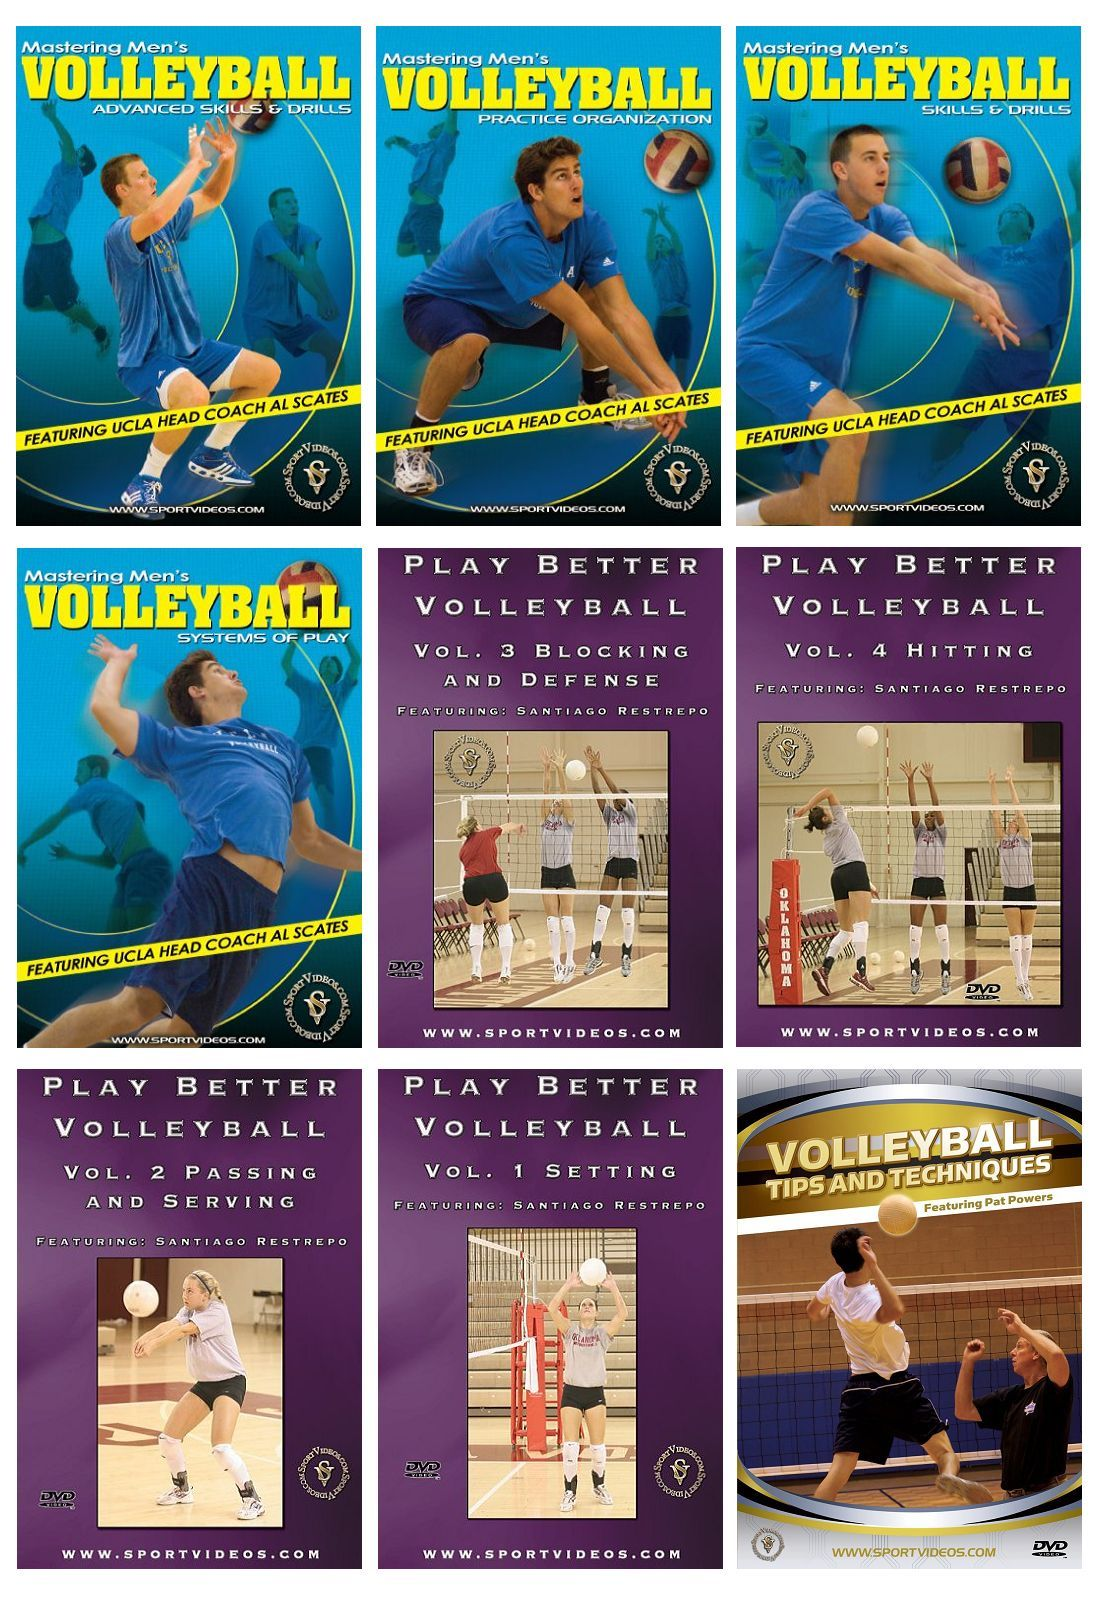 Volleyball 9 Download Set - Free Shipping